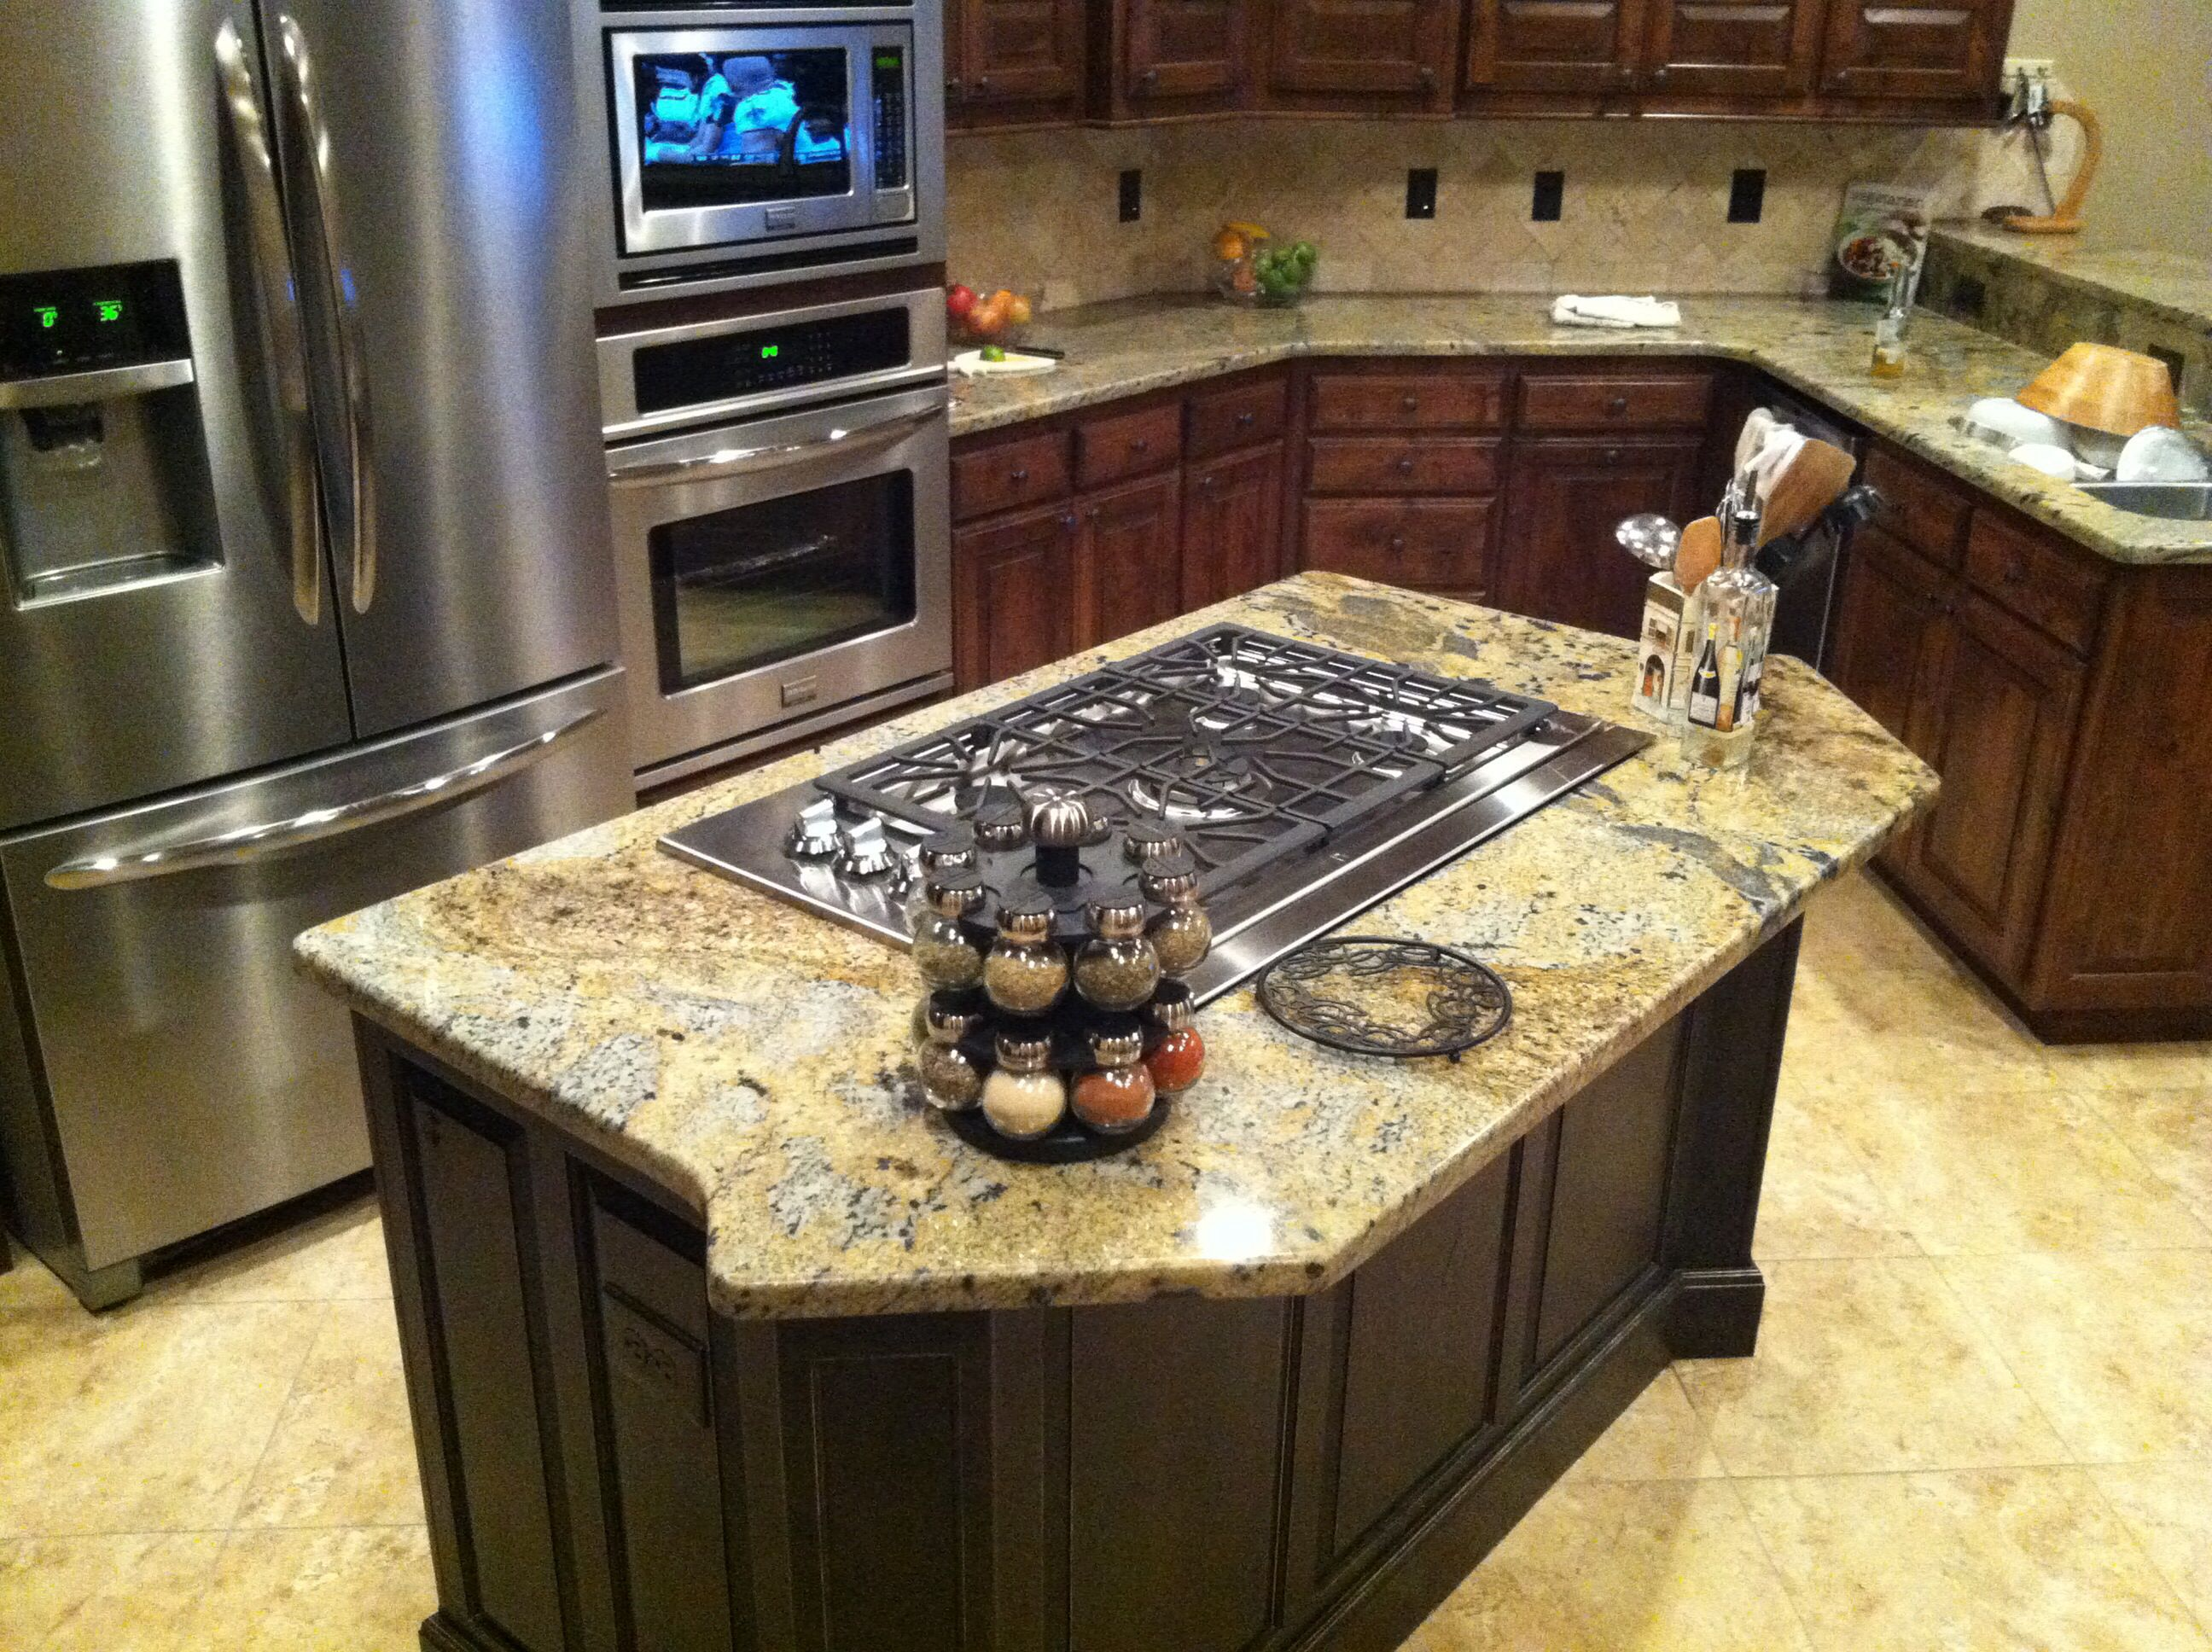 Island Countertop With Stove : island with cooktop Kitchen island gas cooktop Gibson les Paul ...